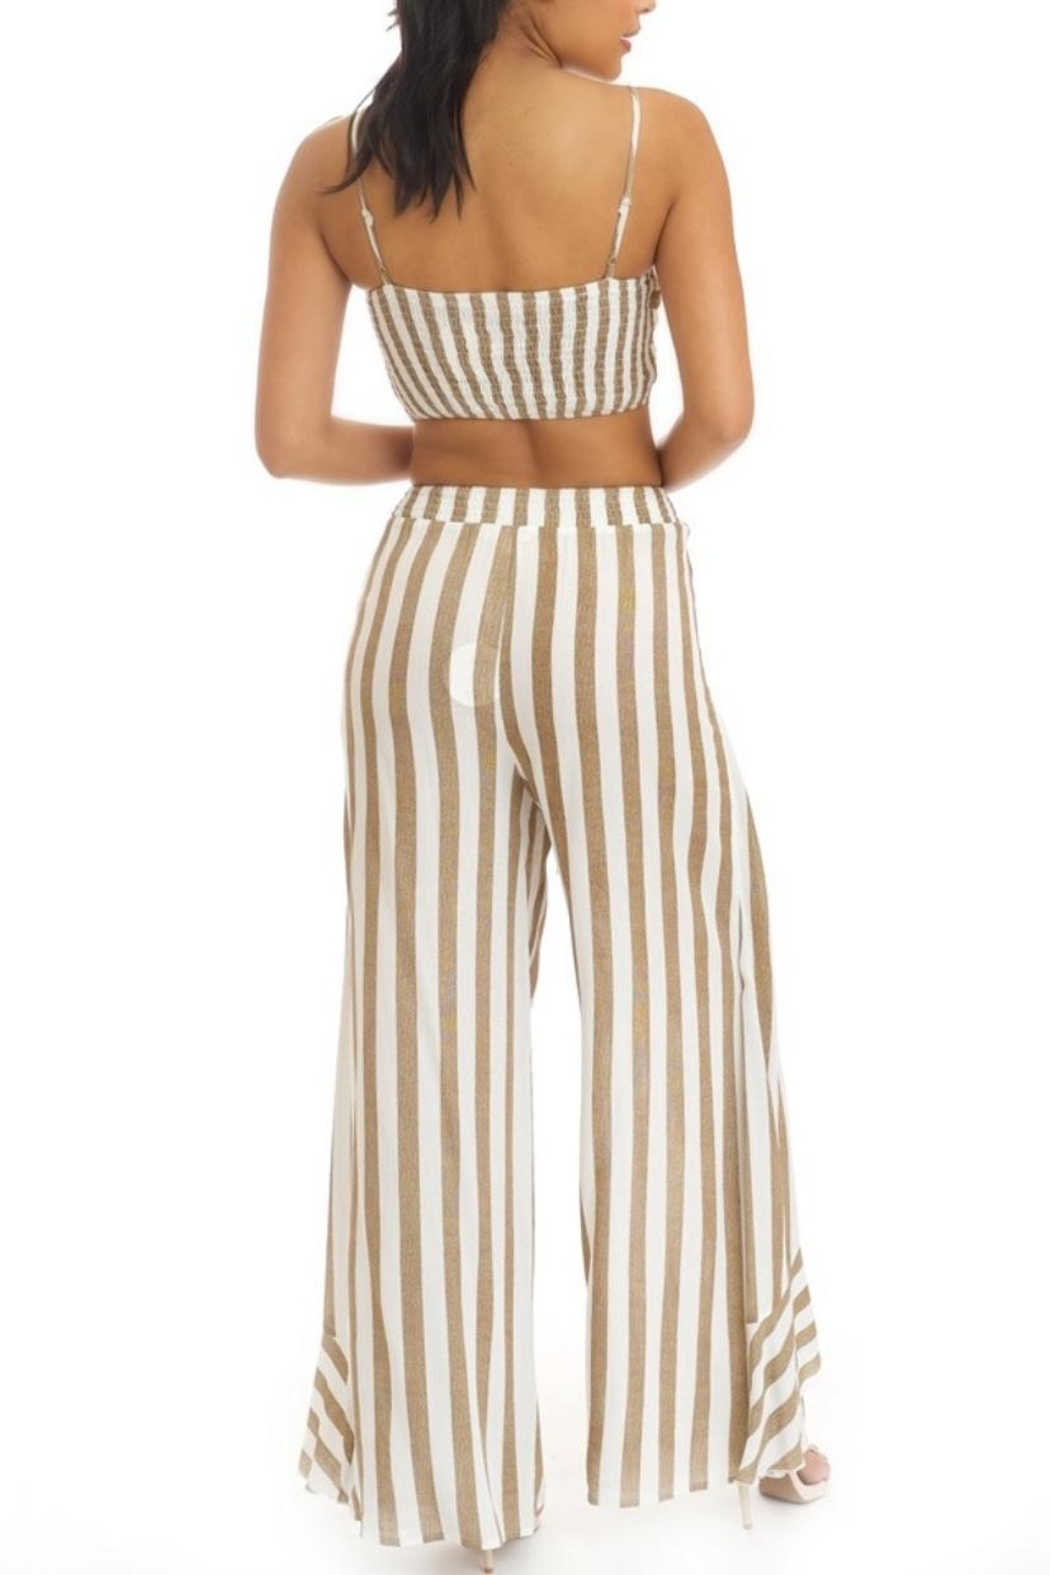 luxxel Ruffled Stripe Pant-Set - Front Full Image